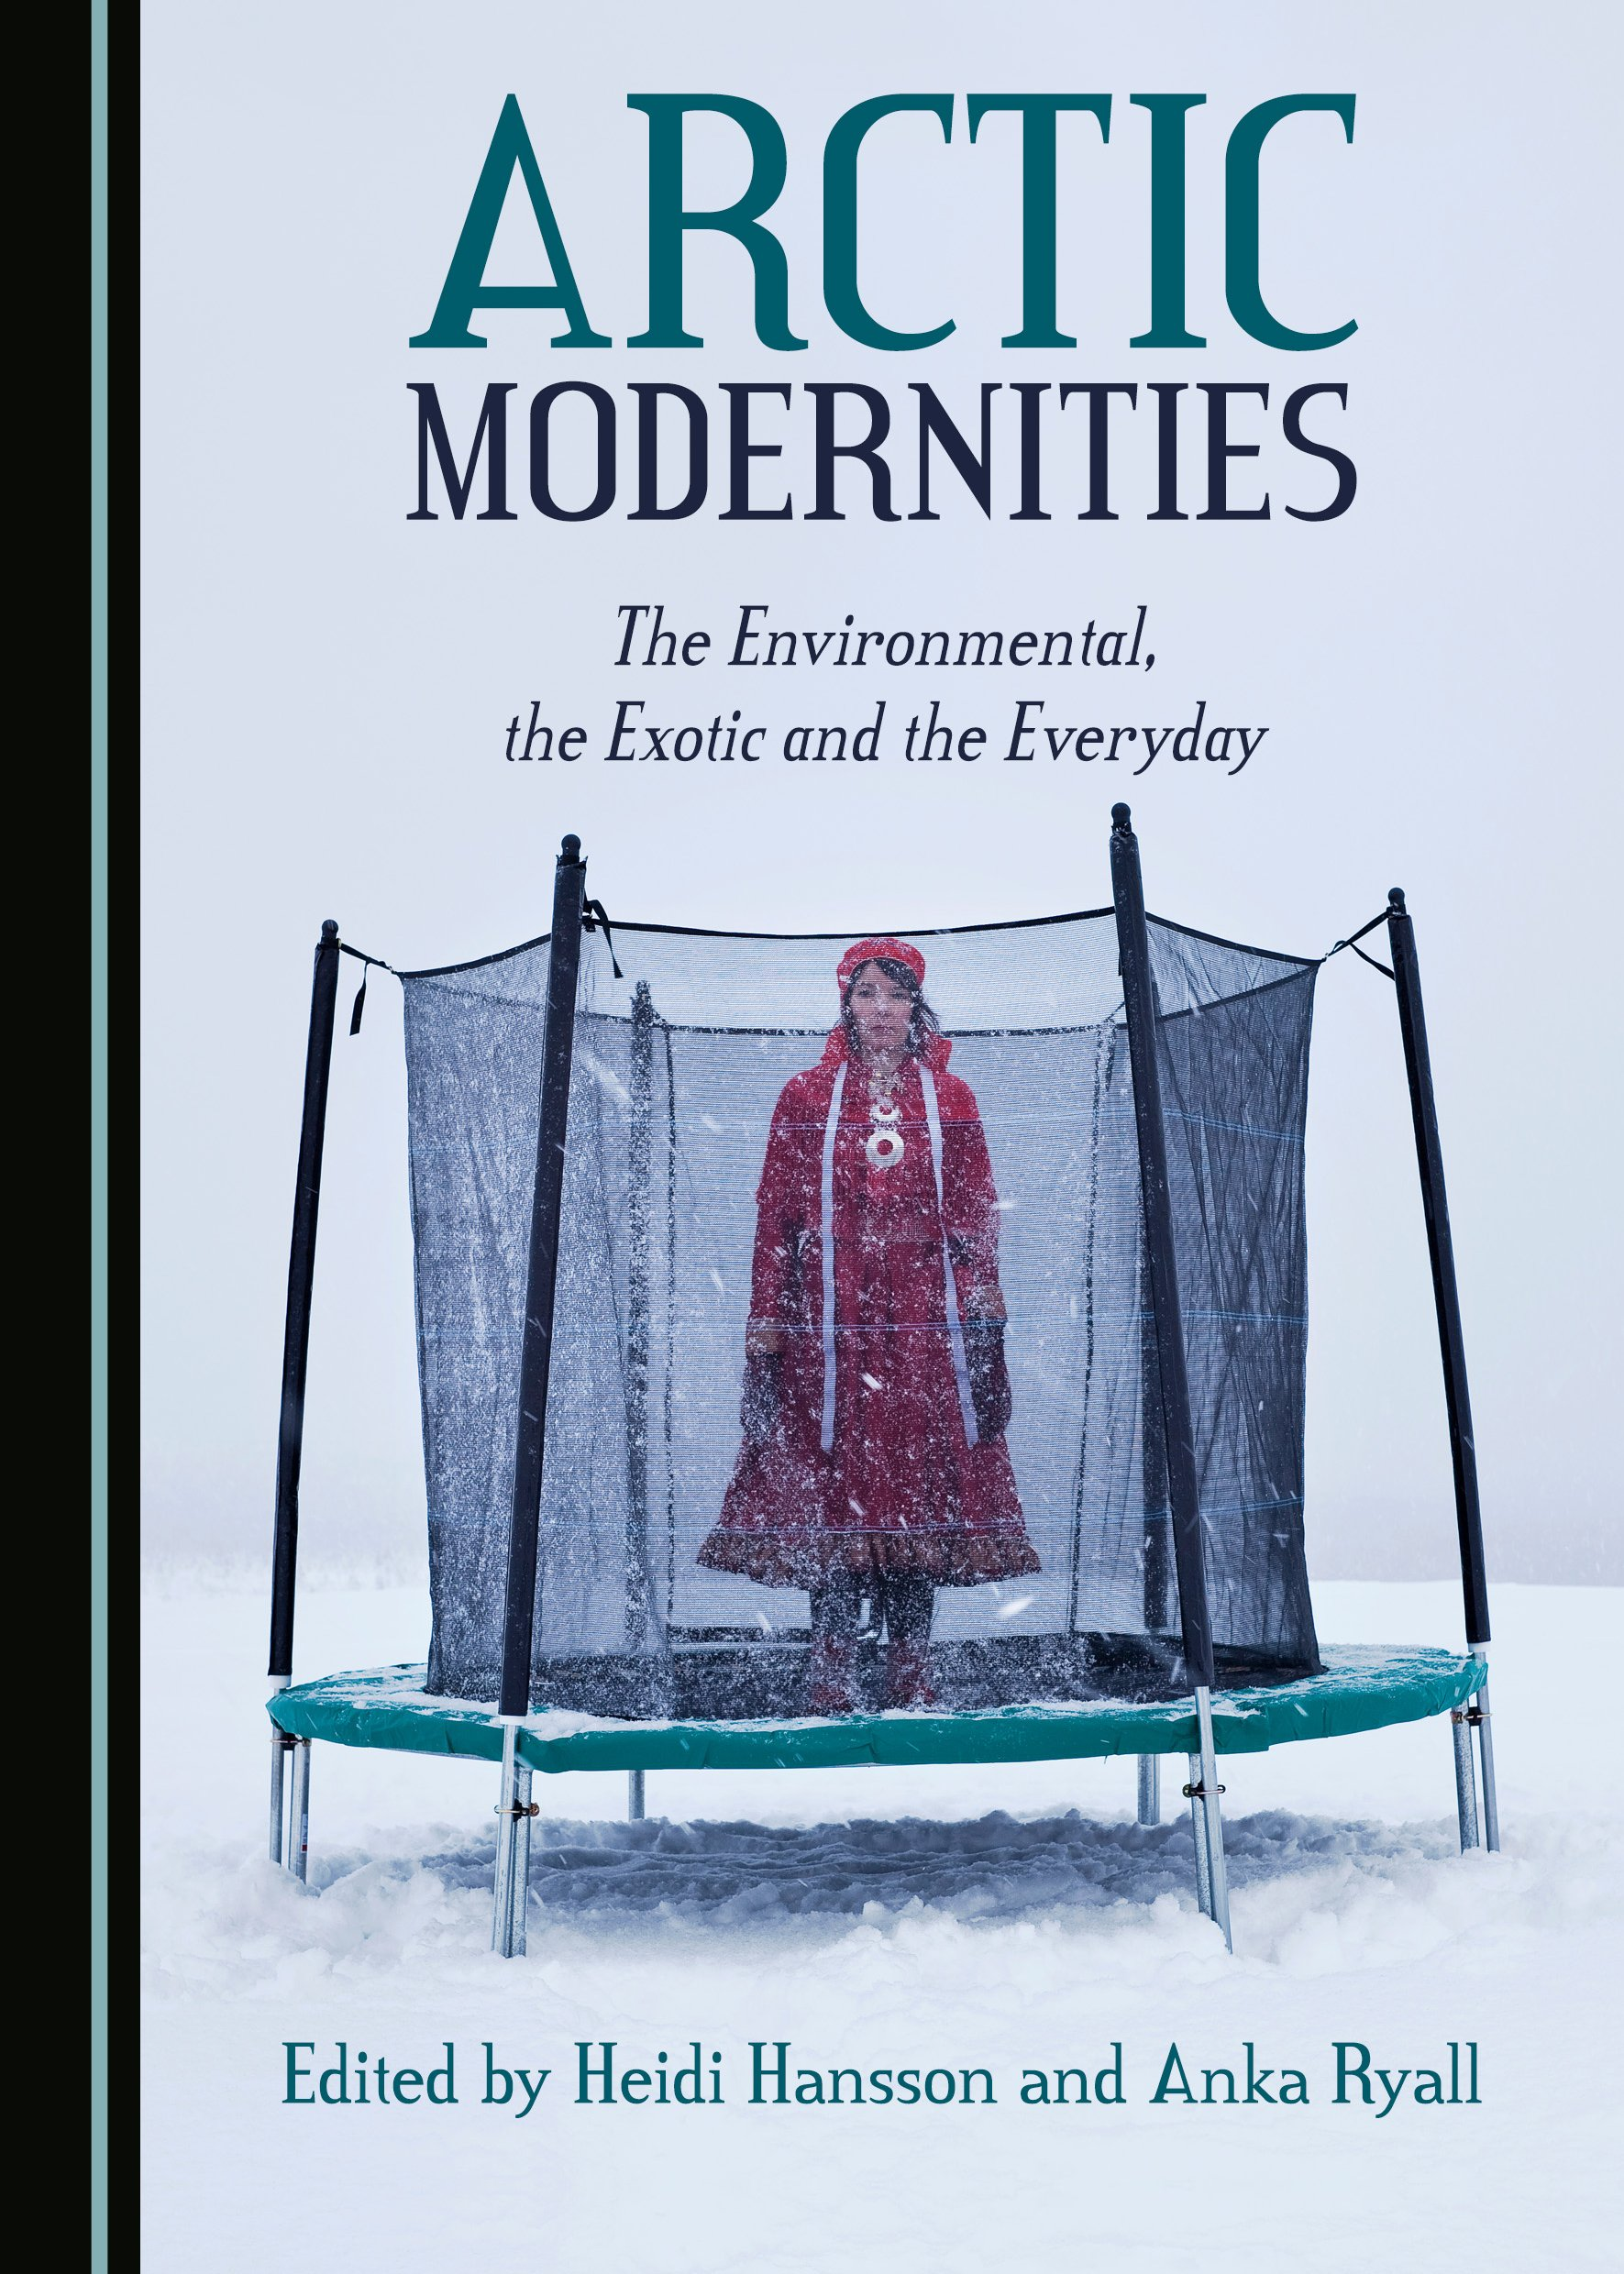 Arctic Modernities: The Environmental, the Exotic and the Everyday